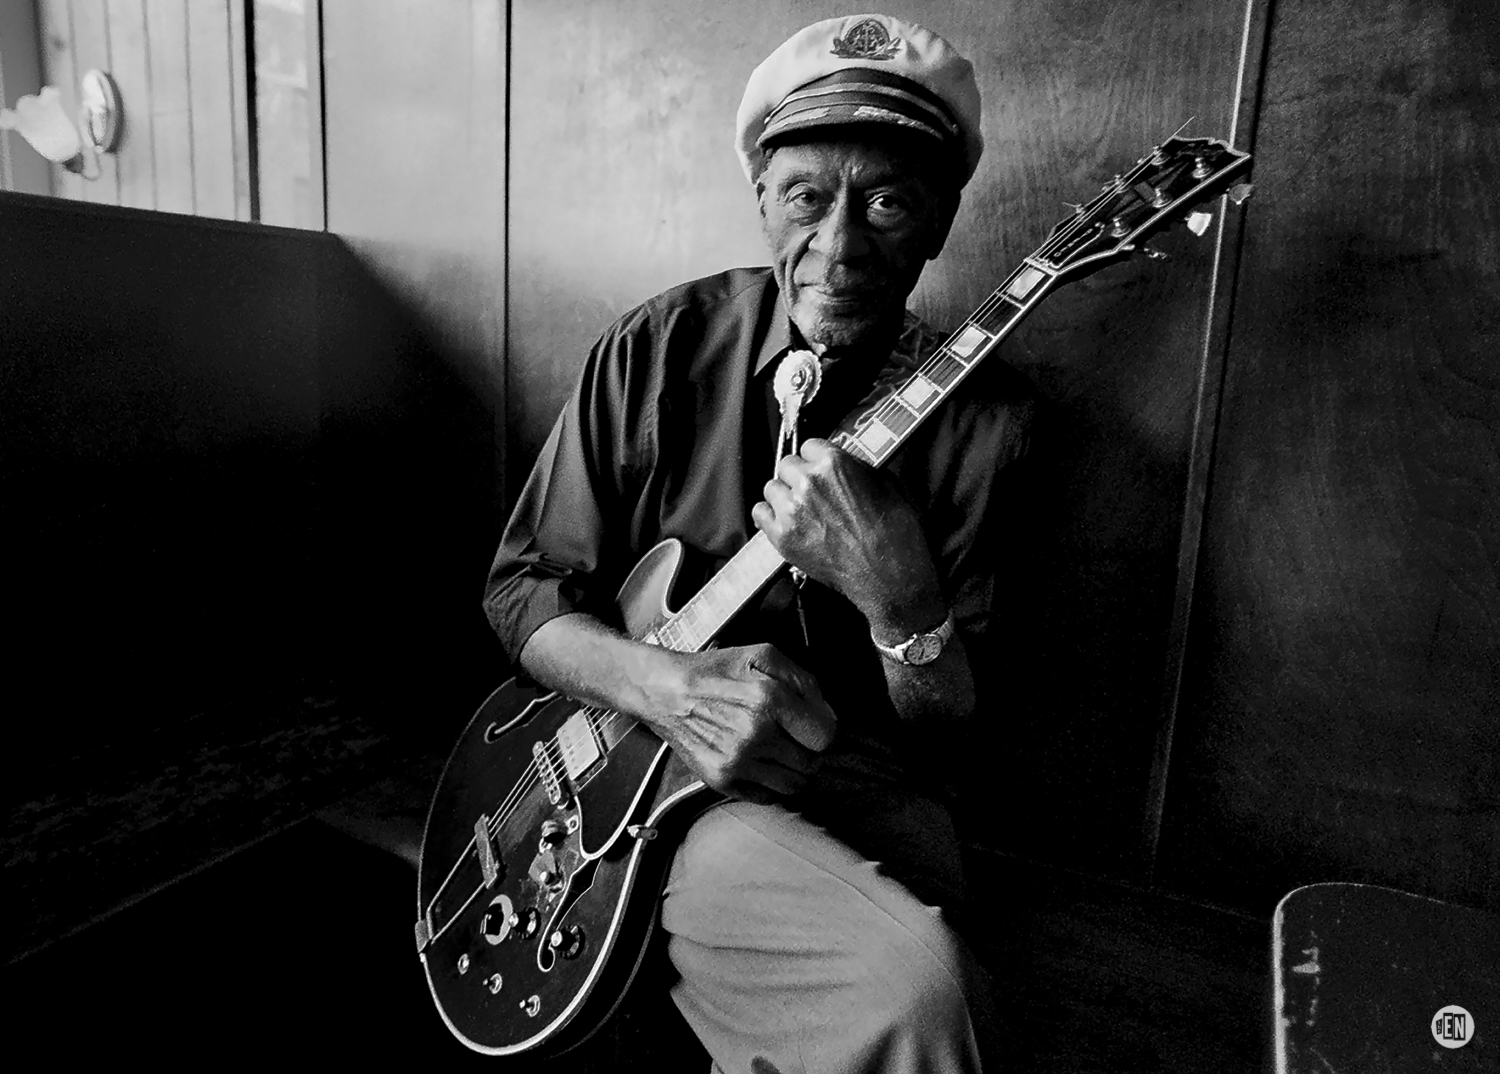 Chuck Berry photographed by Danny Clinch